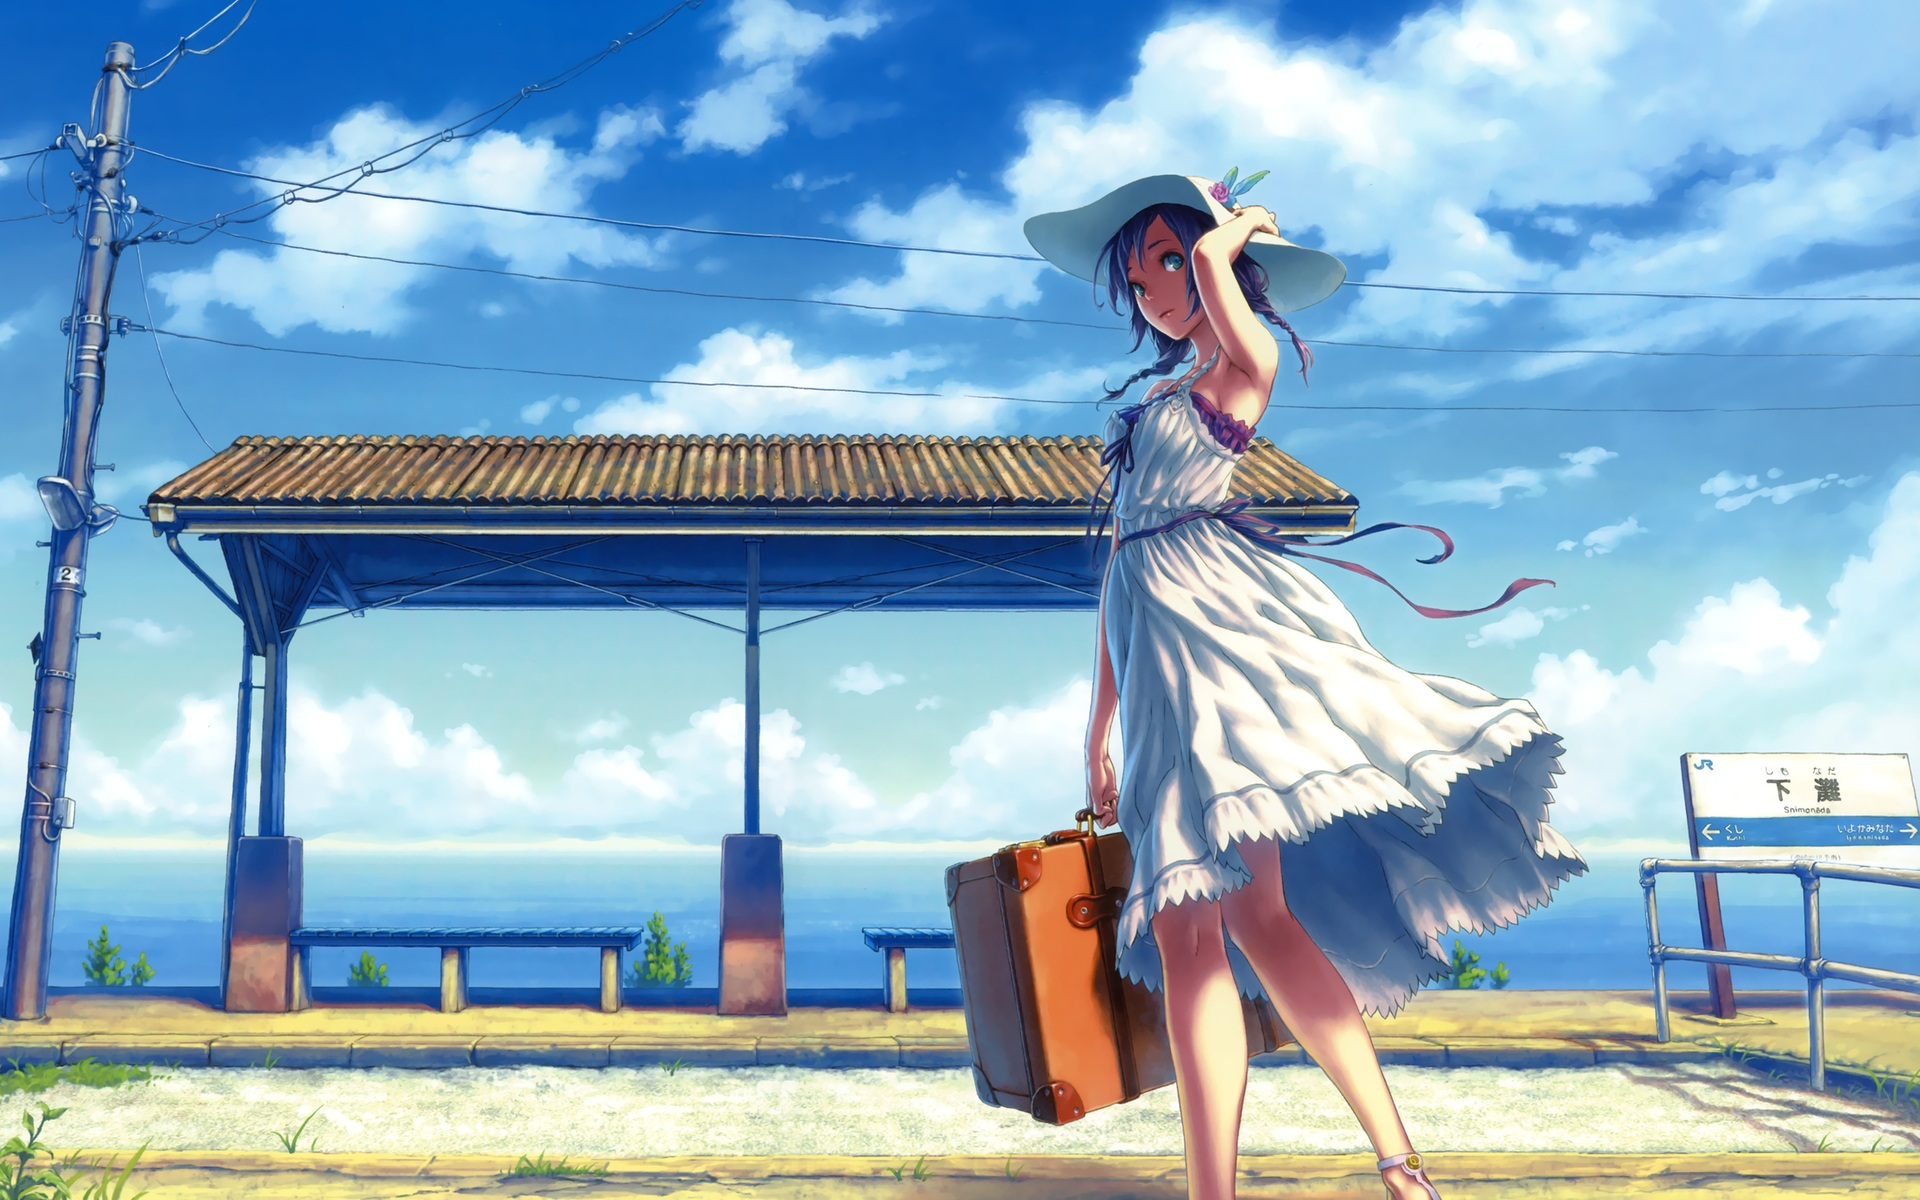 Image result for anime summer picture